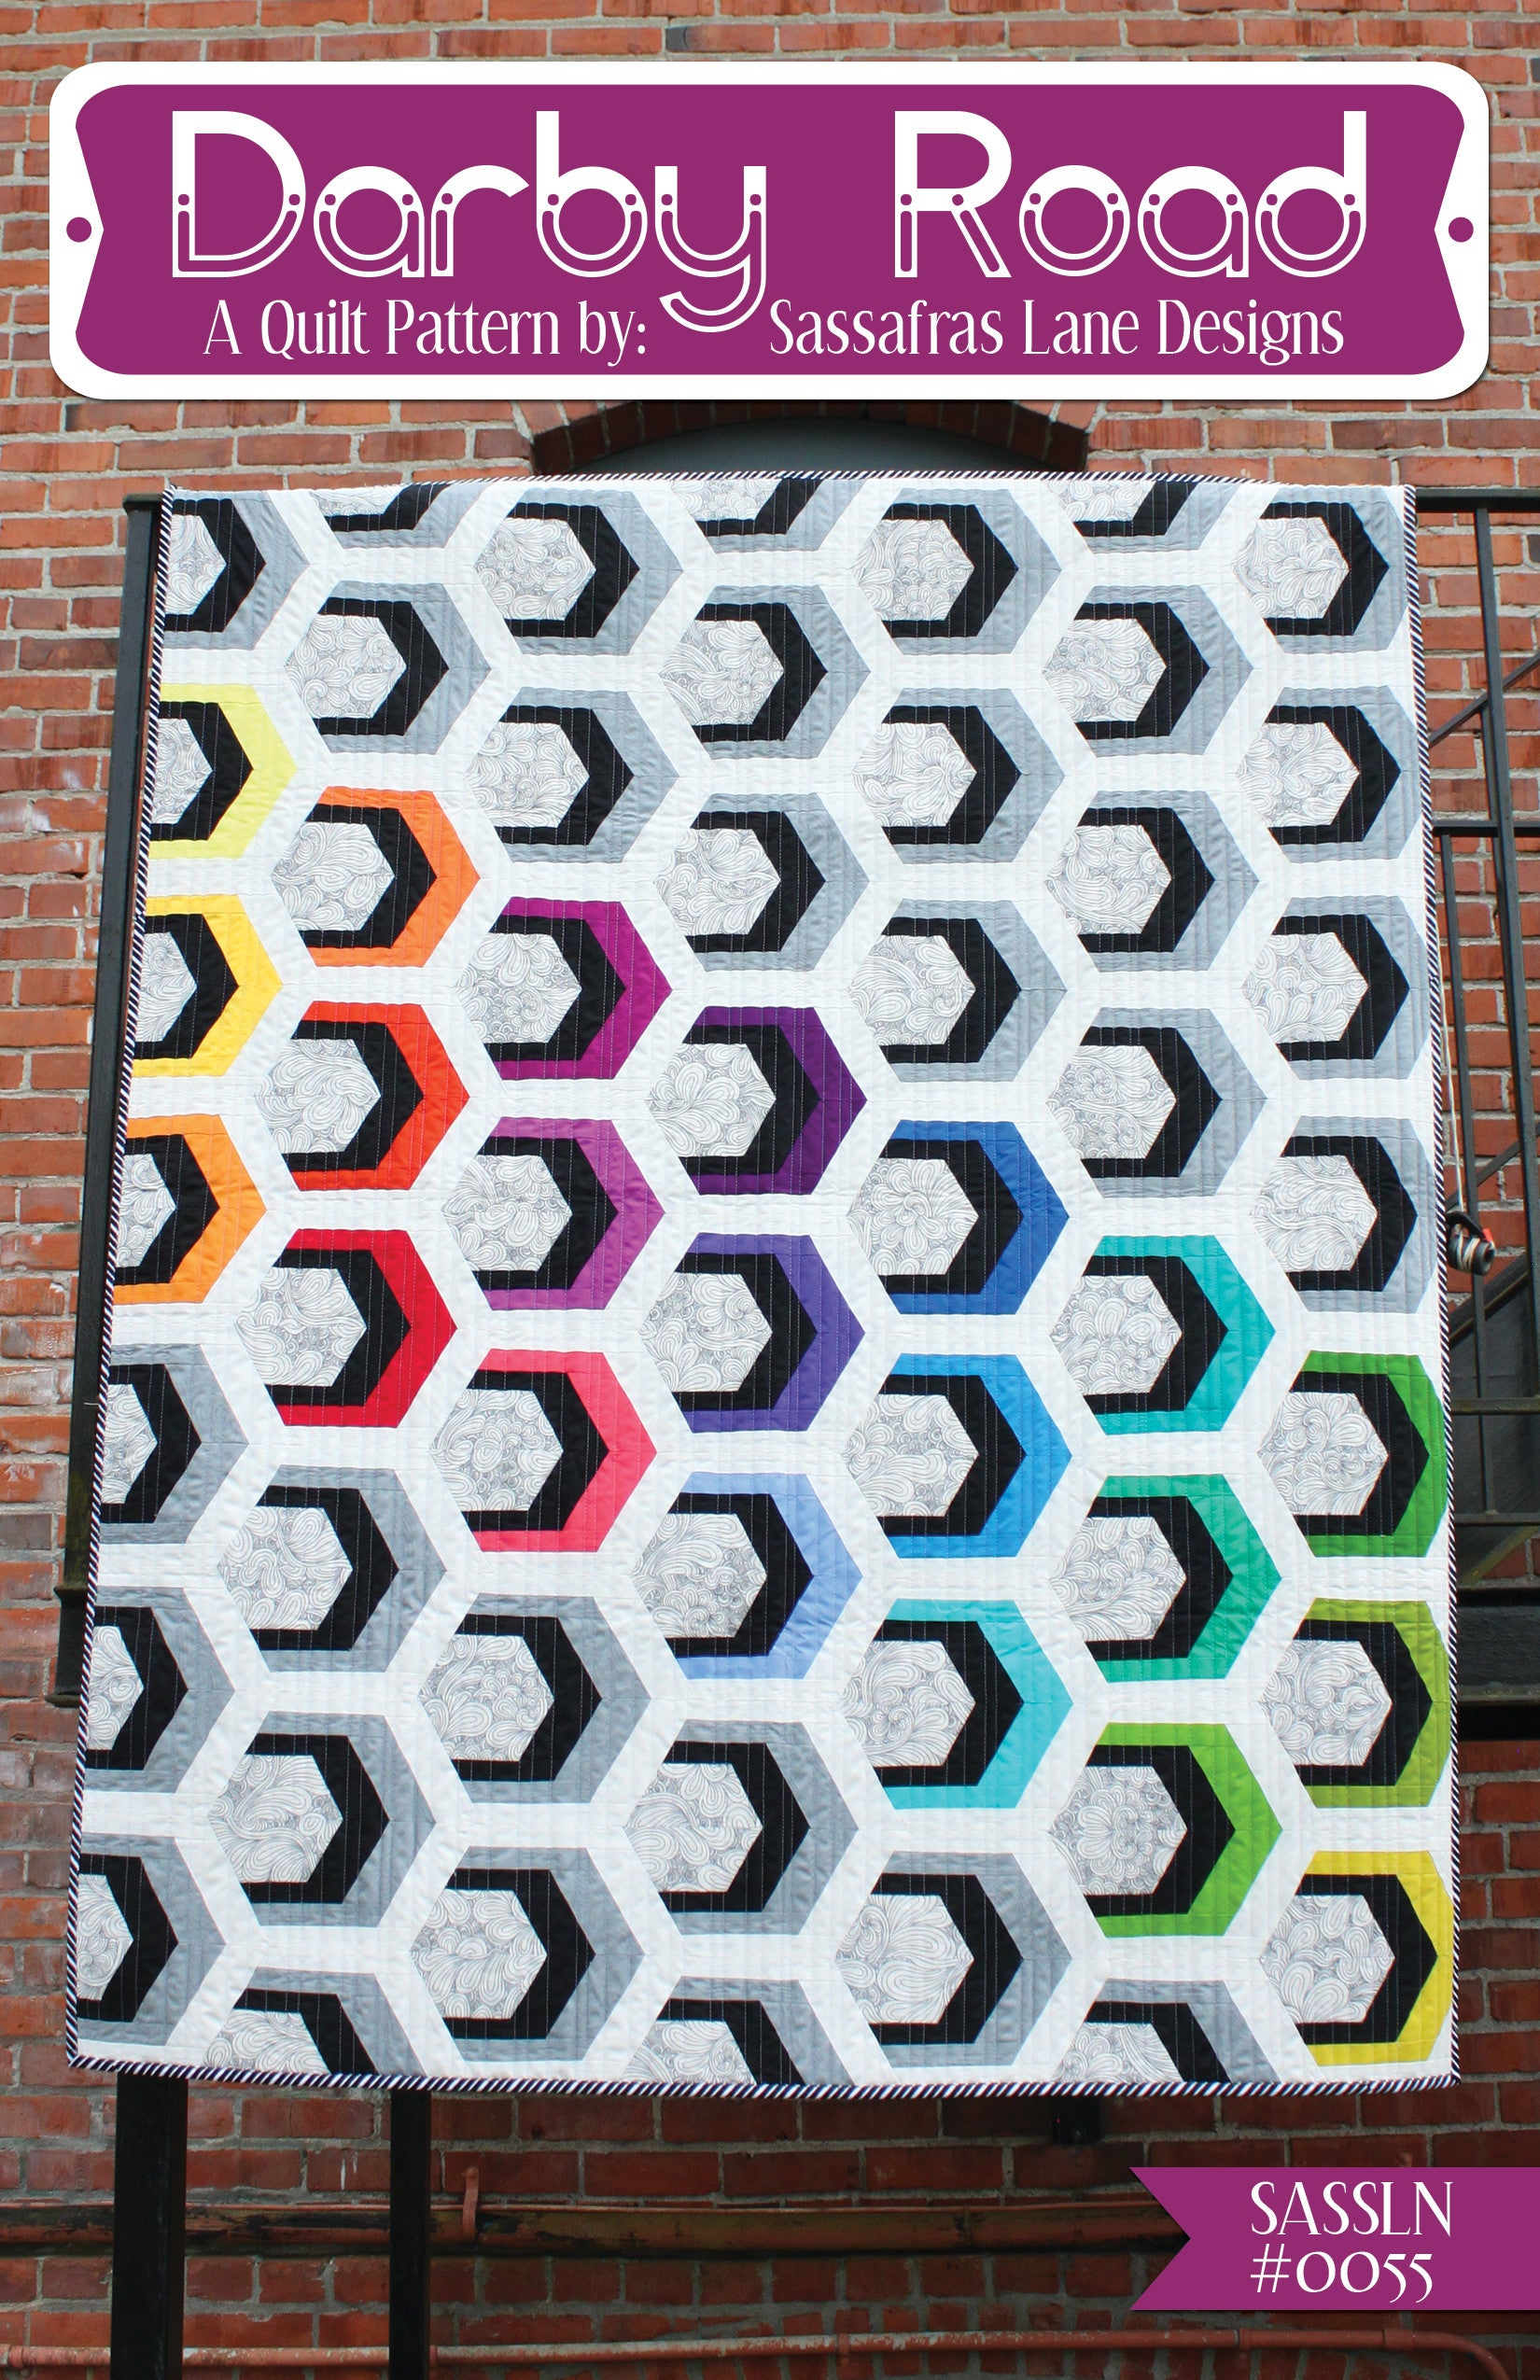 Darby Road Quilt Pattern – Sassafras Lane Designs : road quilt pattern - Adamdwight.com